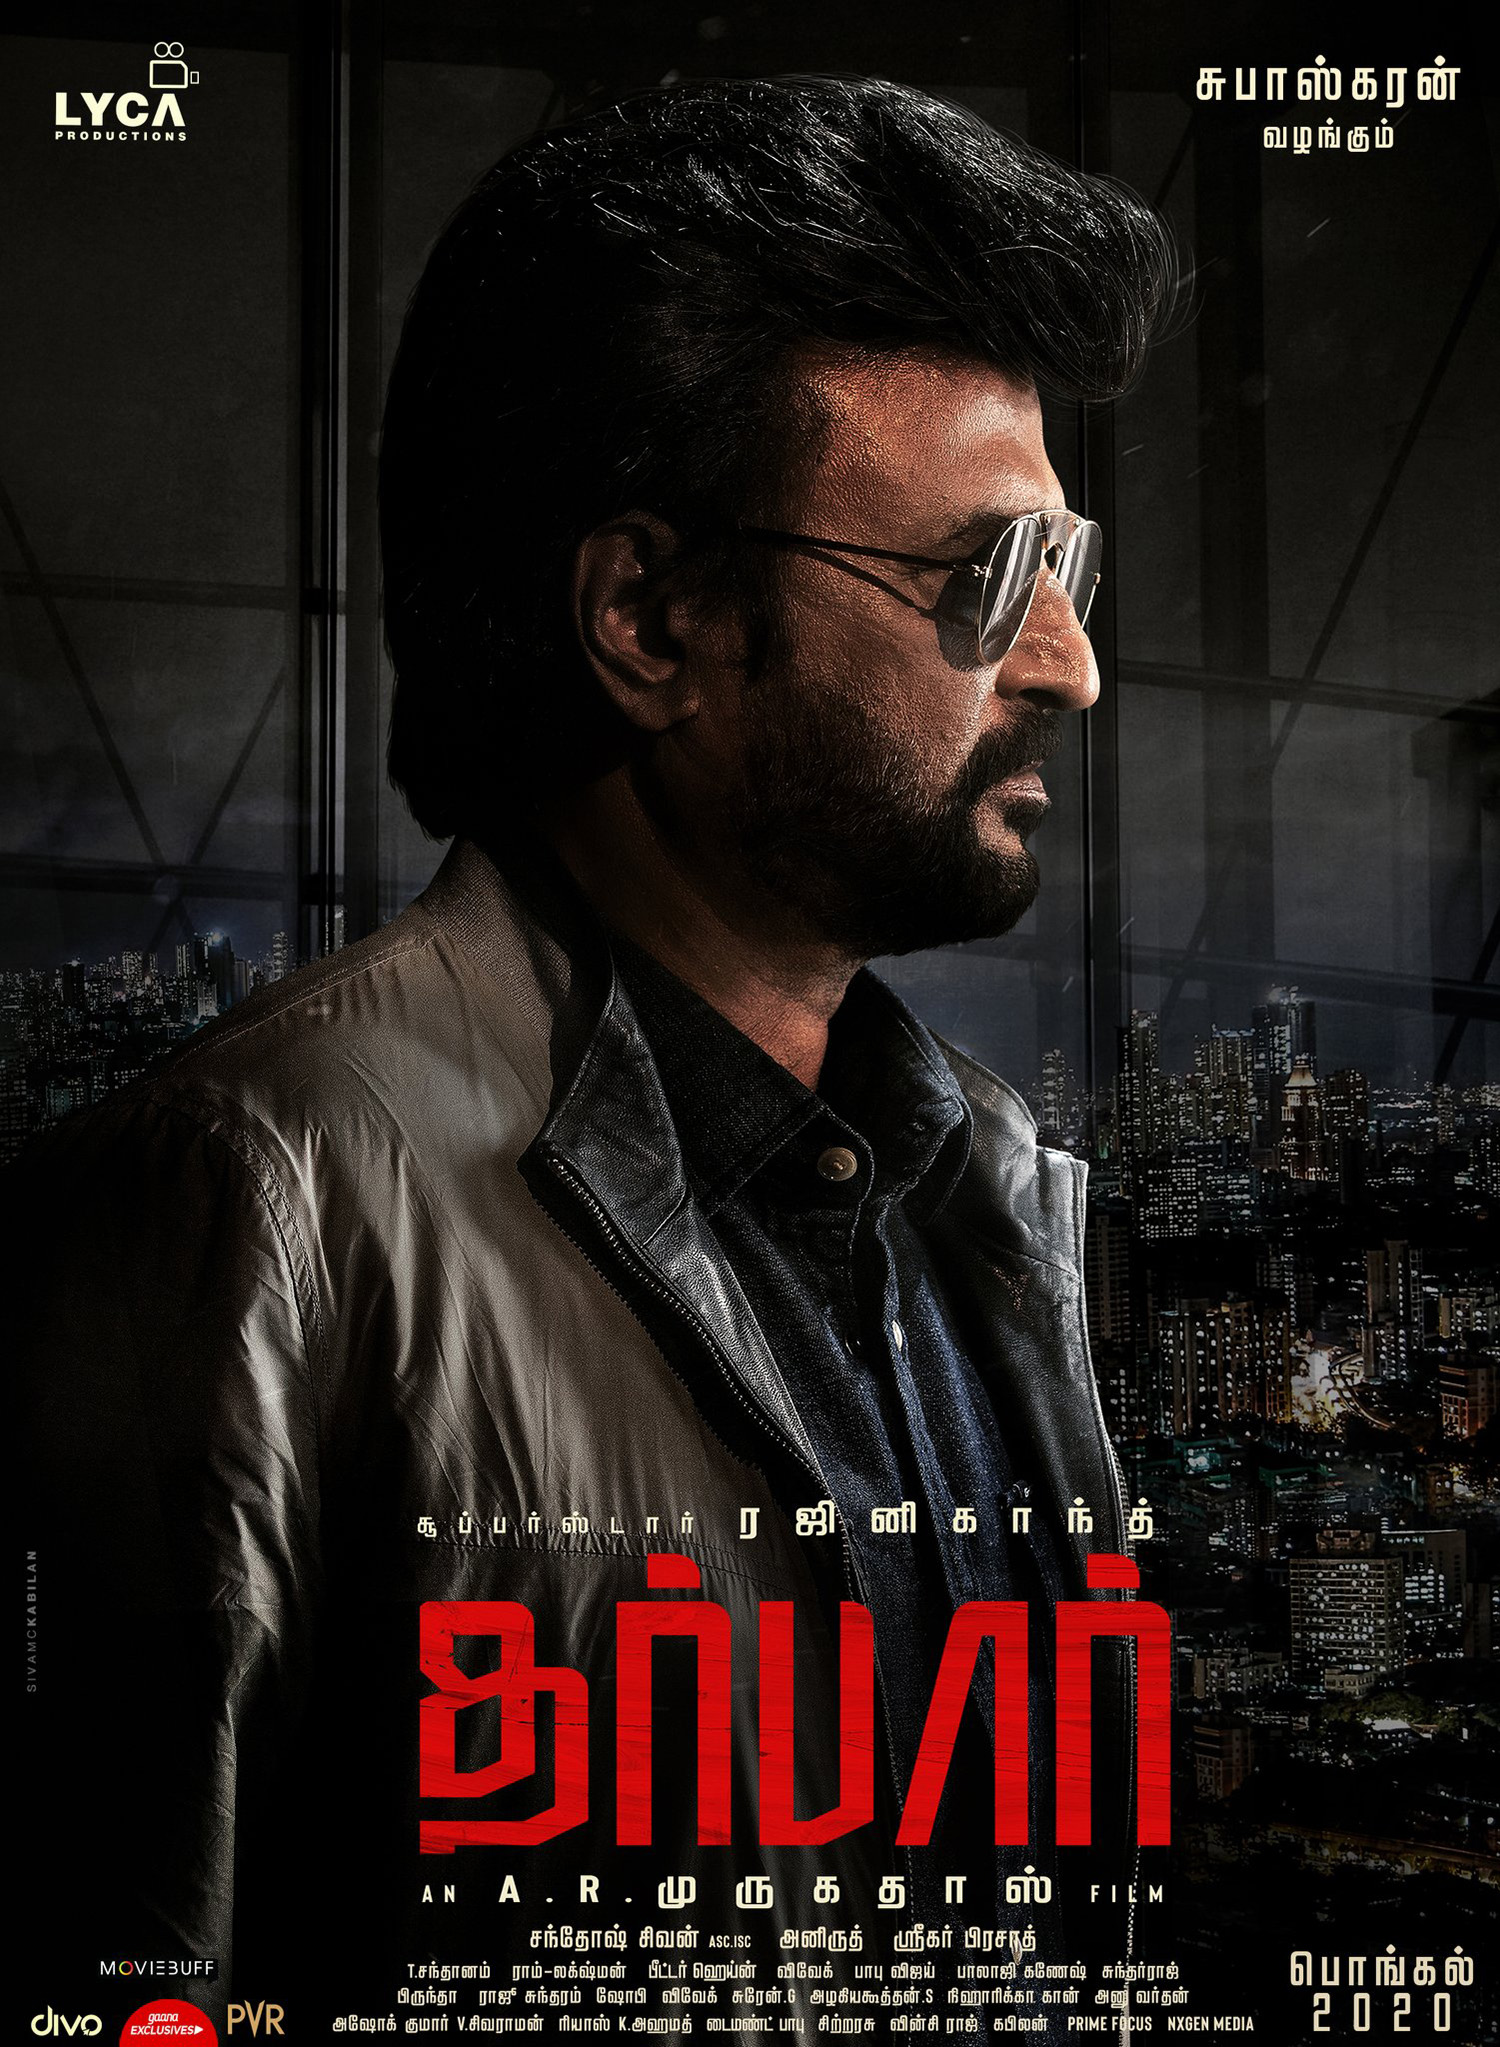 darbar review,darbar movie reviews,darbar hit or flop,darbar latest news,darbar review rating report,latest tamil film news,darbar movie report,superstar rajinikanth,thalaivar,rajinikanth latest news,rajinikanth darbar review,rajinikanth ar murugadoss movie report,nayanthara,ar murugadoss,ar murugadoss new movie darbar review,darbar movie stills,darbar rajinikanth images,rajinikanth latest movie images;